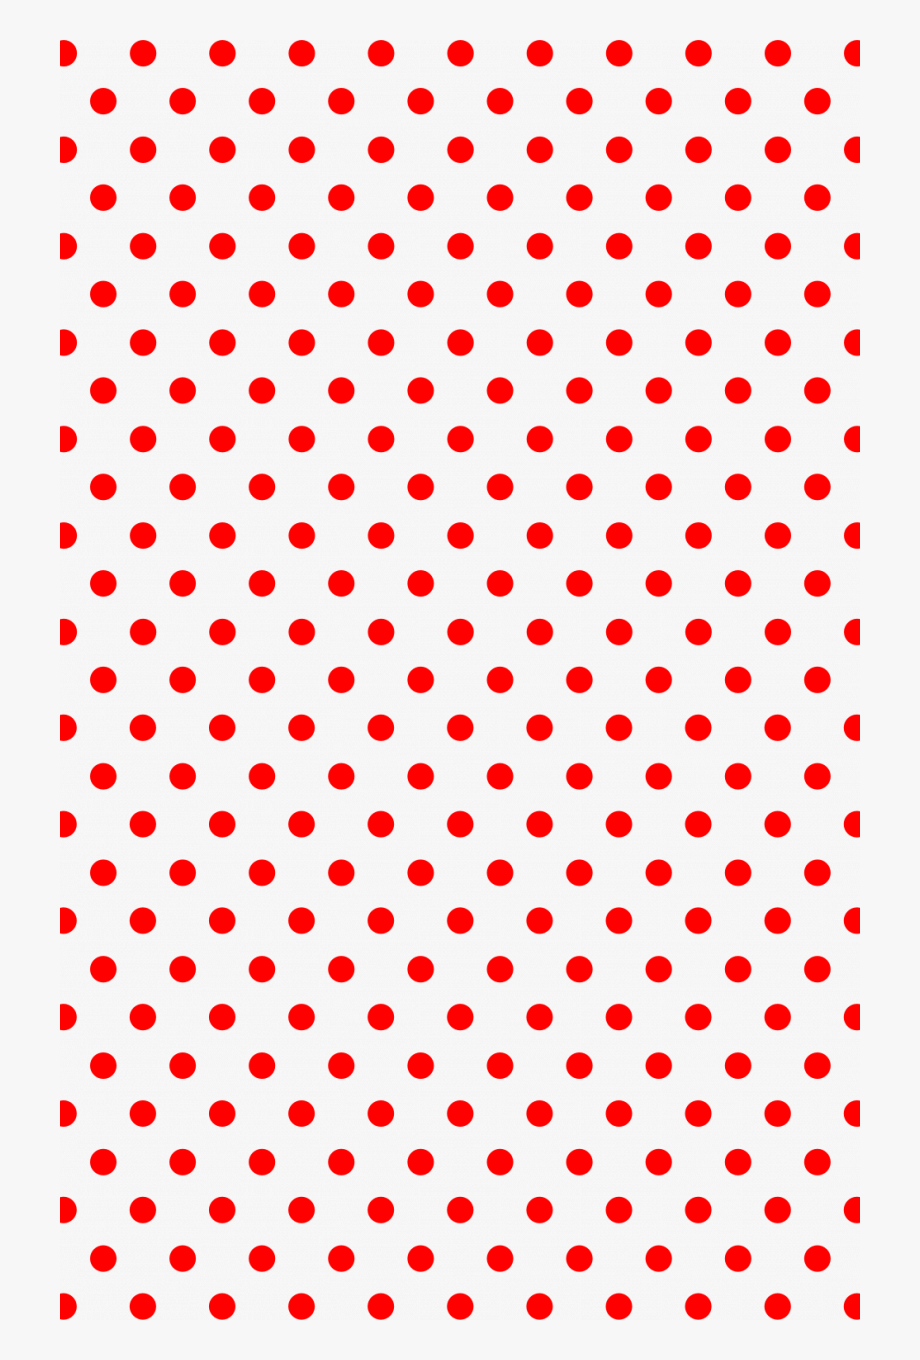 Clipart Red Polka Dots.